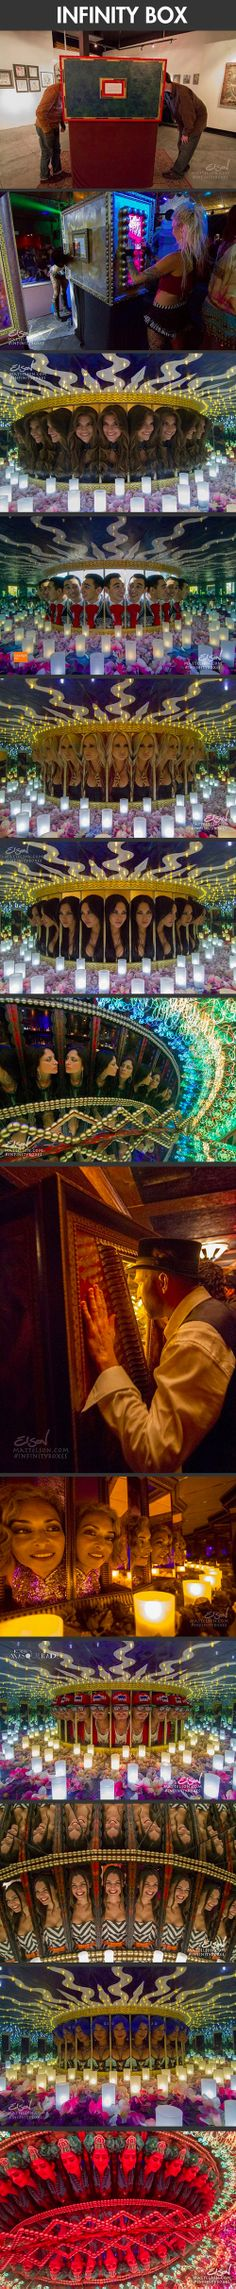 Cool infinity box relies on mirrors to produce a nifty optical illusion.